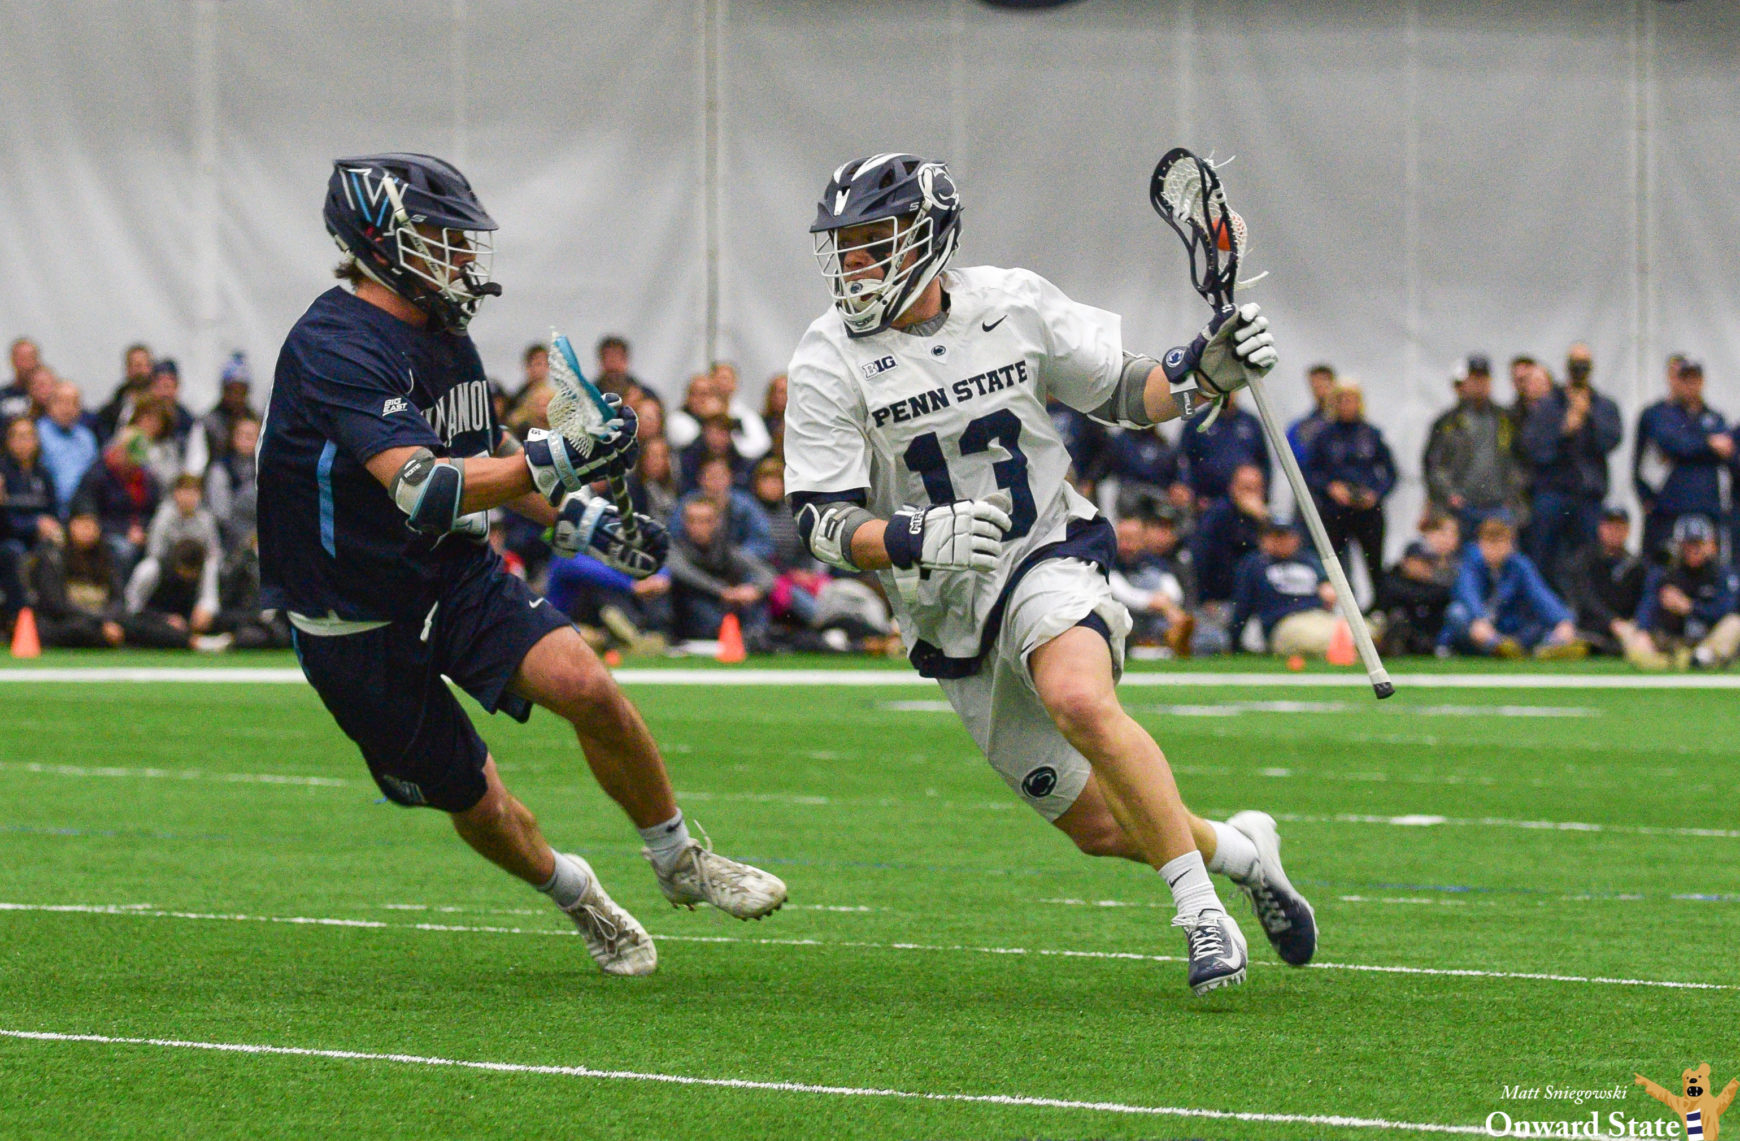 Penn State Men's Lacrosse Ranked No. 1 In The Country ...